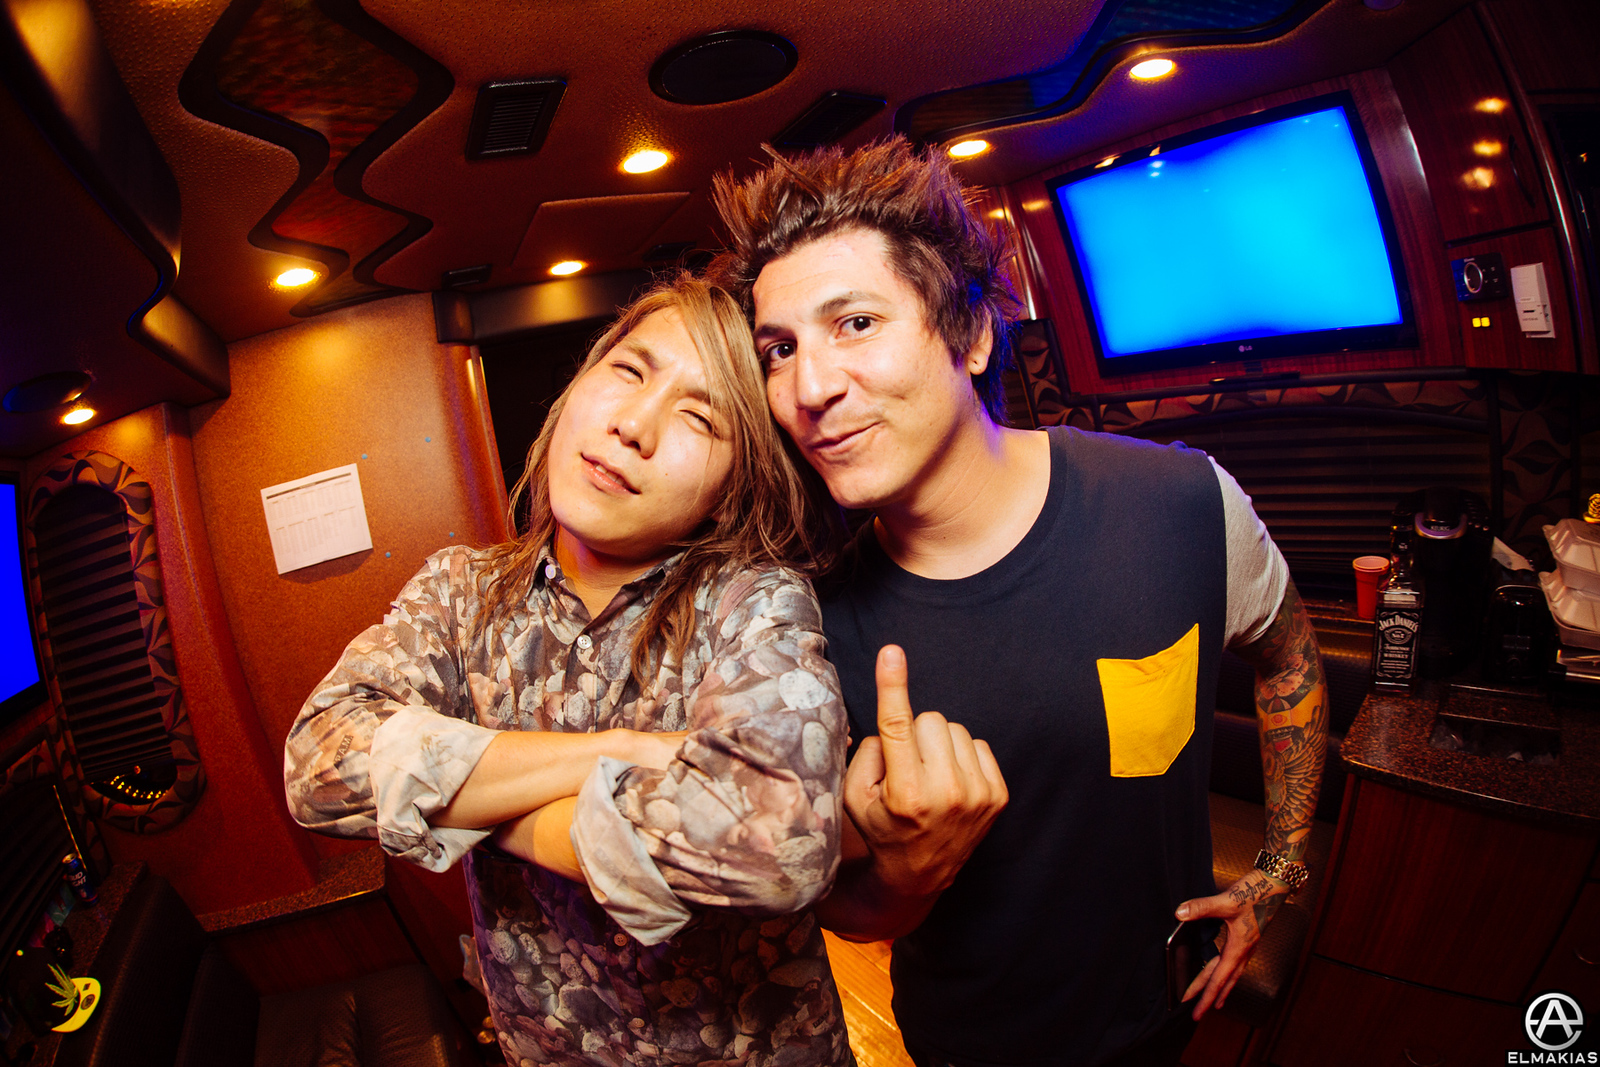 Hiroki Ikegawa of Crossfaith and Jaime Preciado of Pierce The Veil at Vans Warped Tour 2015 by Adam Elmakias